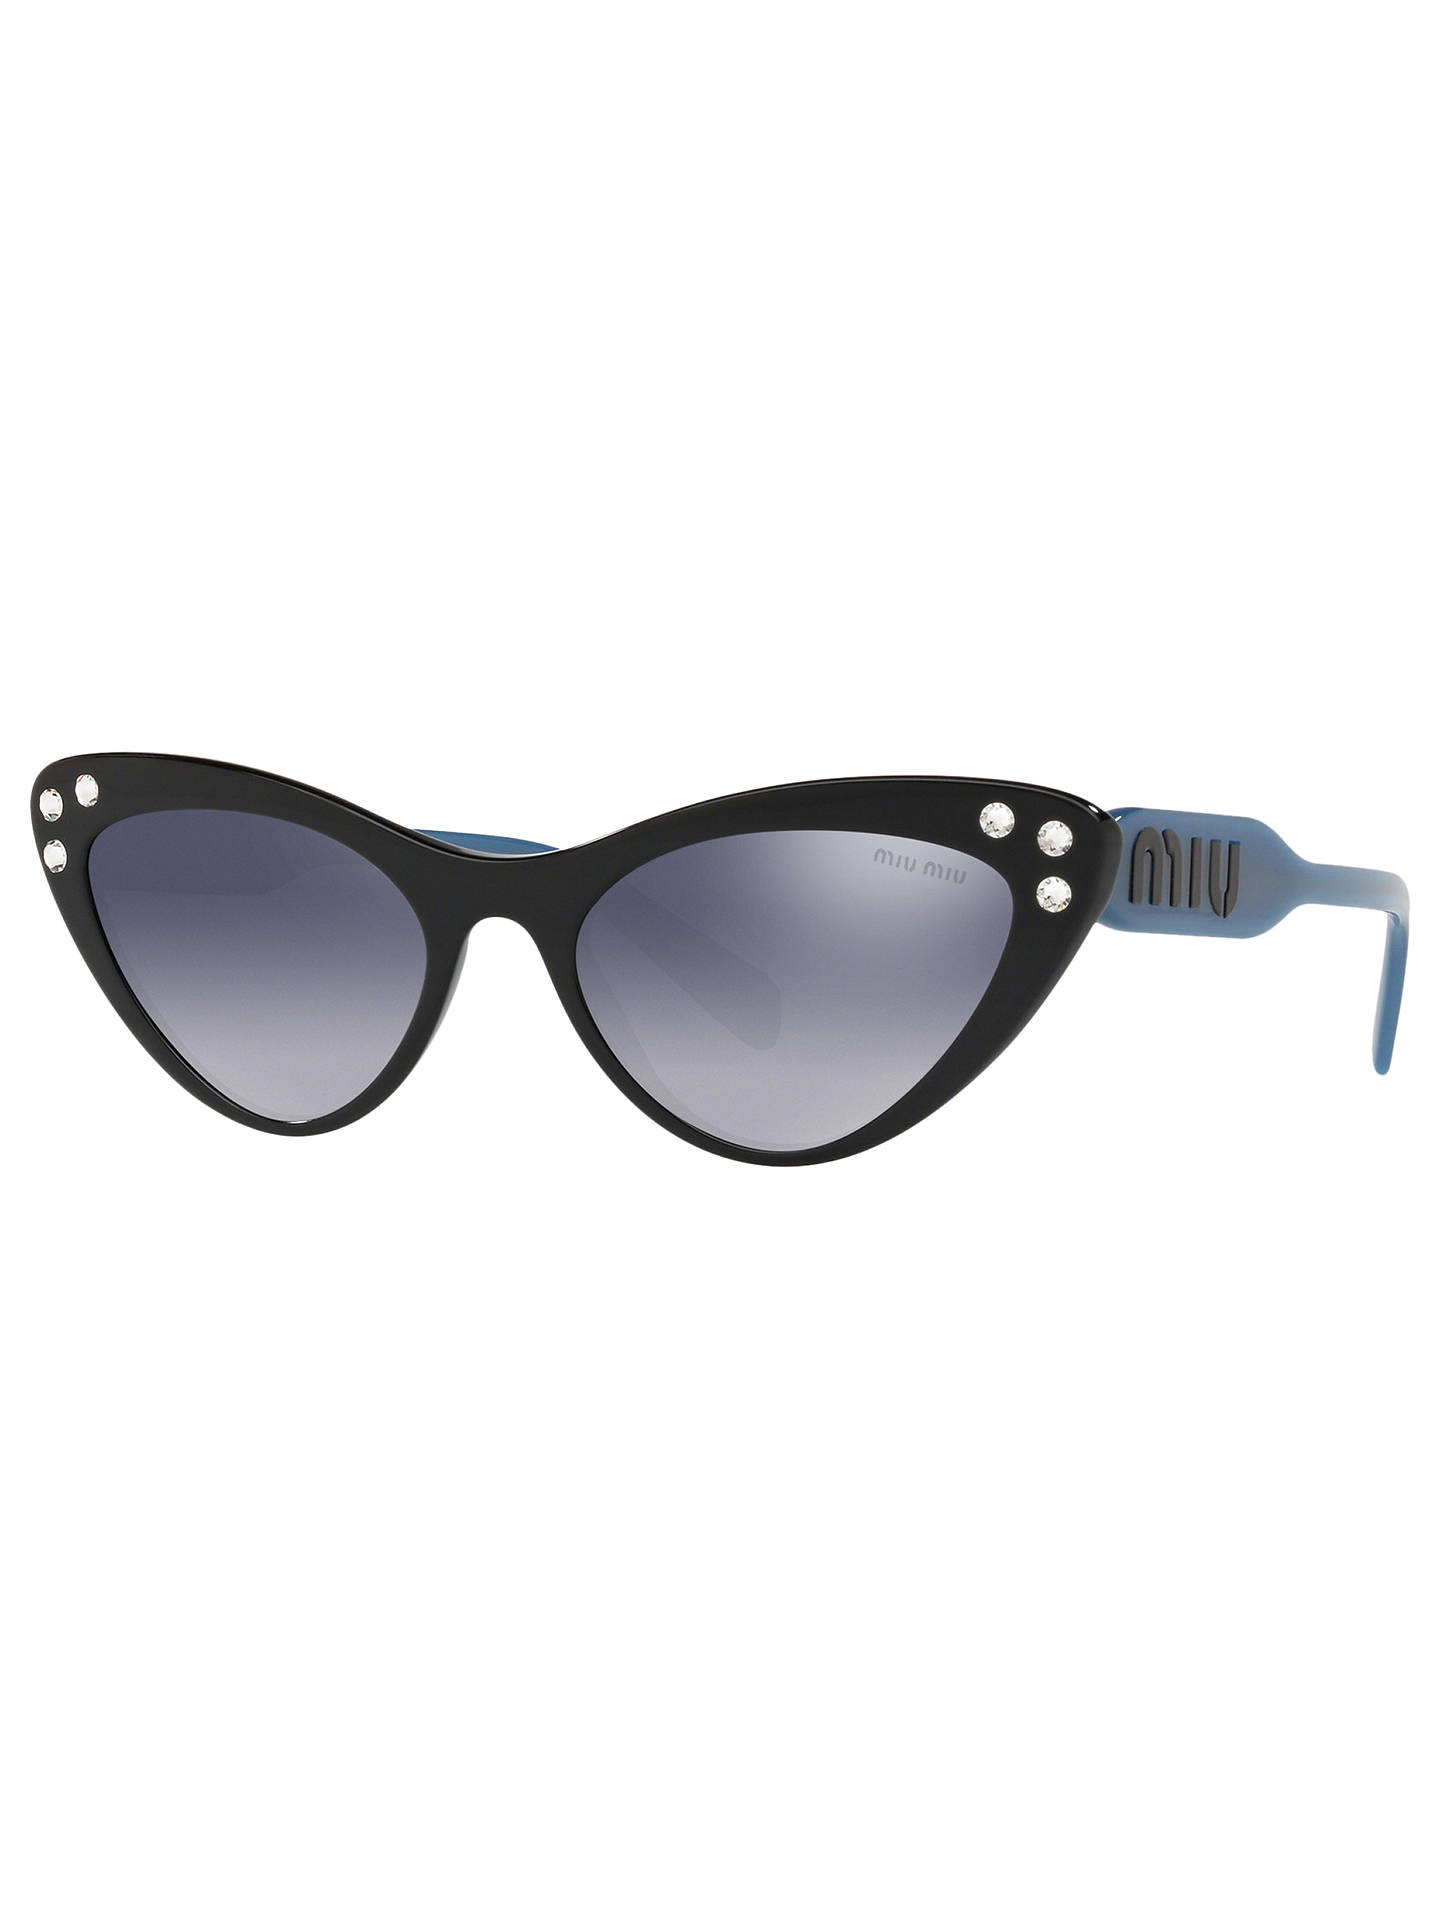 22e8e1232718 Buy Miu Miu MU 05TS Women s Stud Cat s Eye Sunglasses